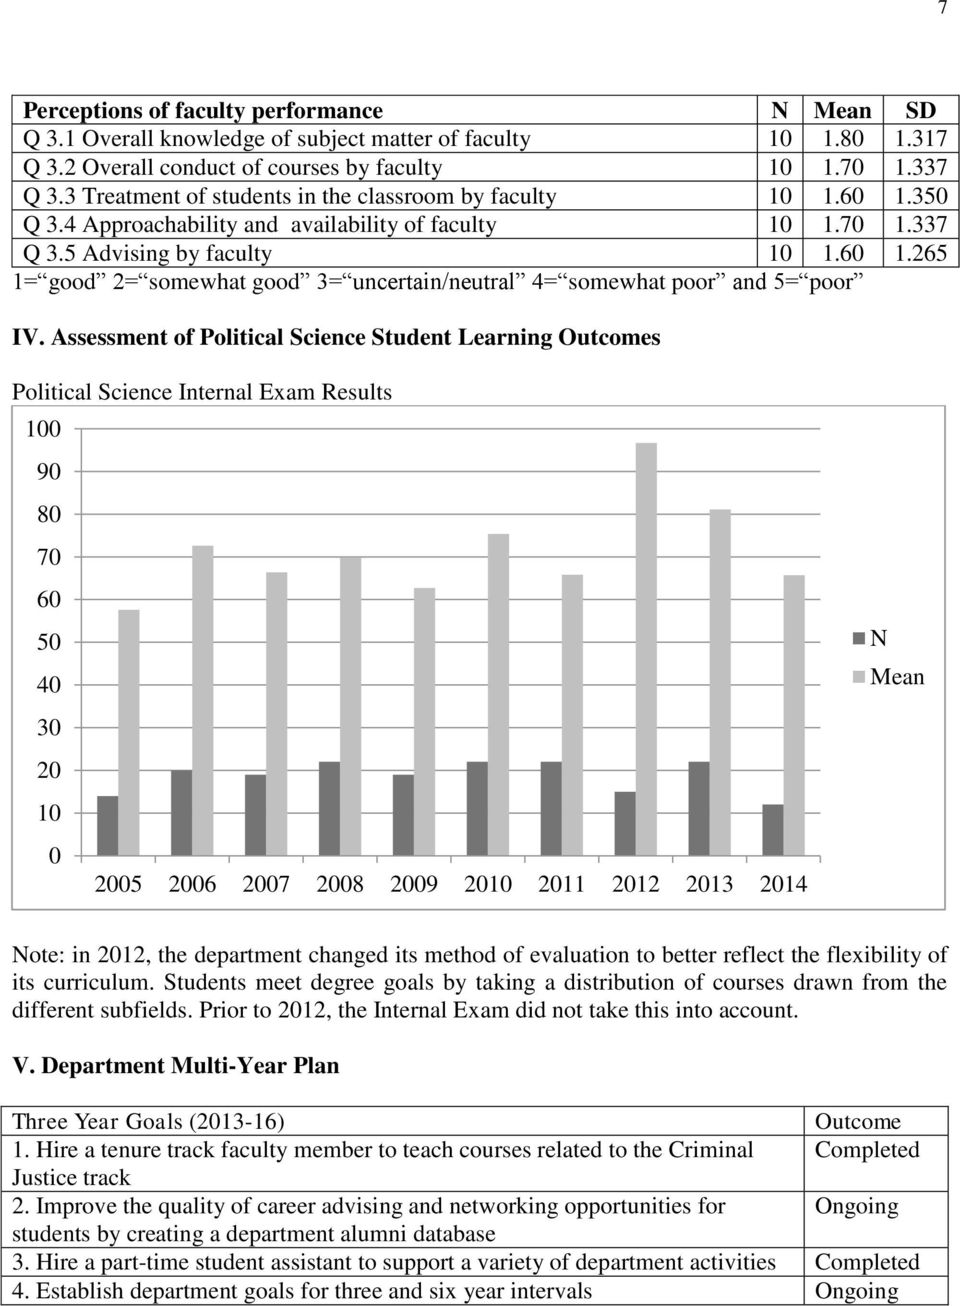 Assessment of Political Science Student Learning Outcomes Political Science Internal Exam Results 100 90 80 70 60 50 40 30 20 10 0 2005 2006 2007 2008 2009 2010 2011 2012 2013 2014 N Mean Note: in